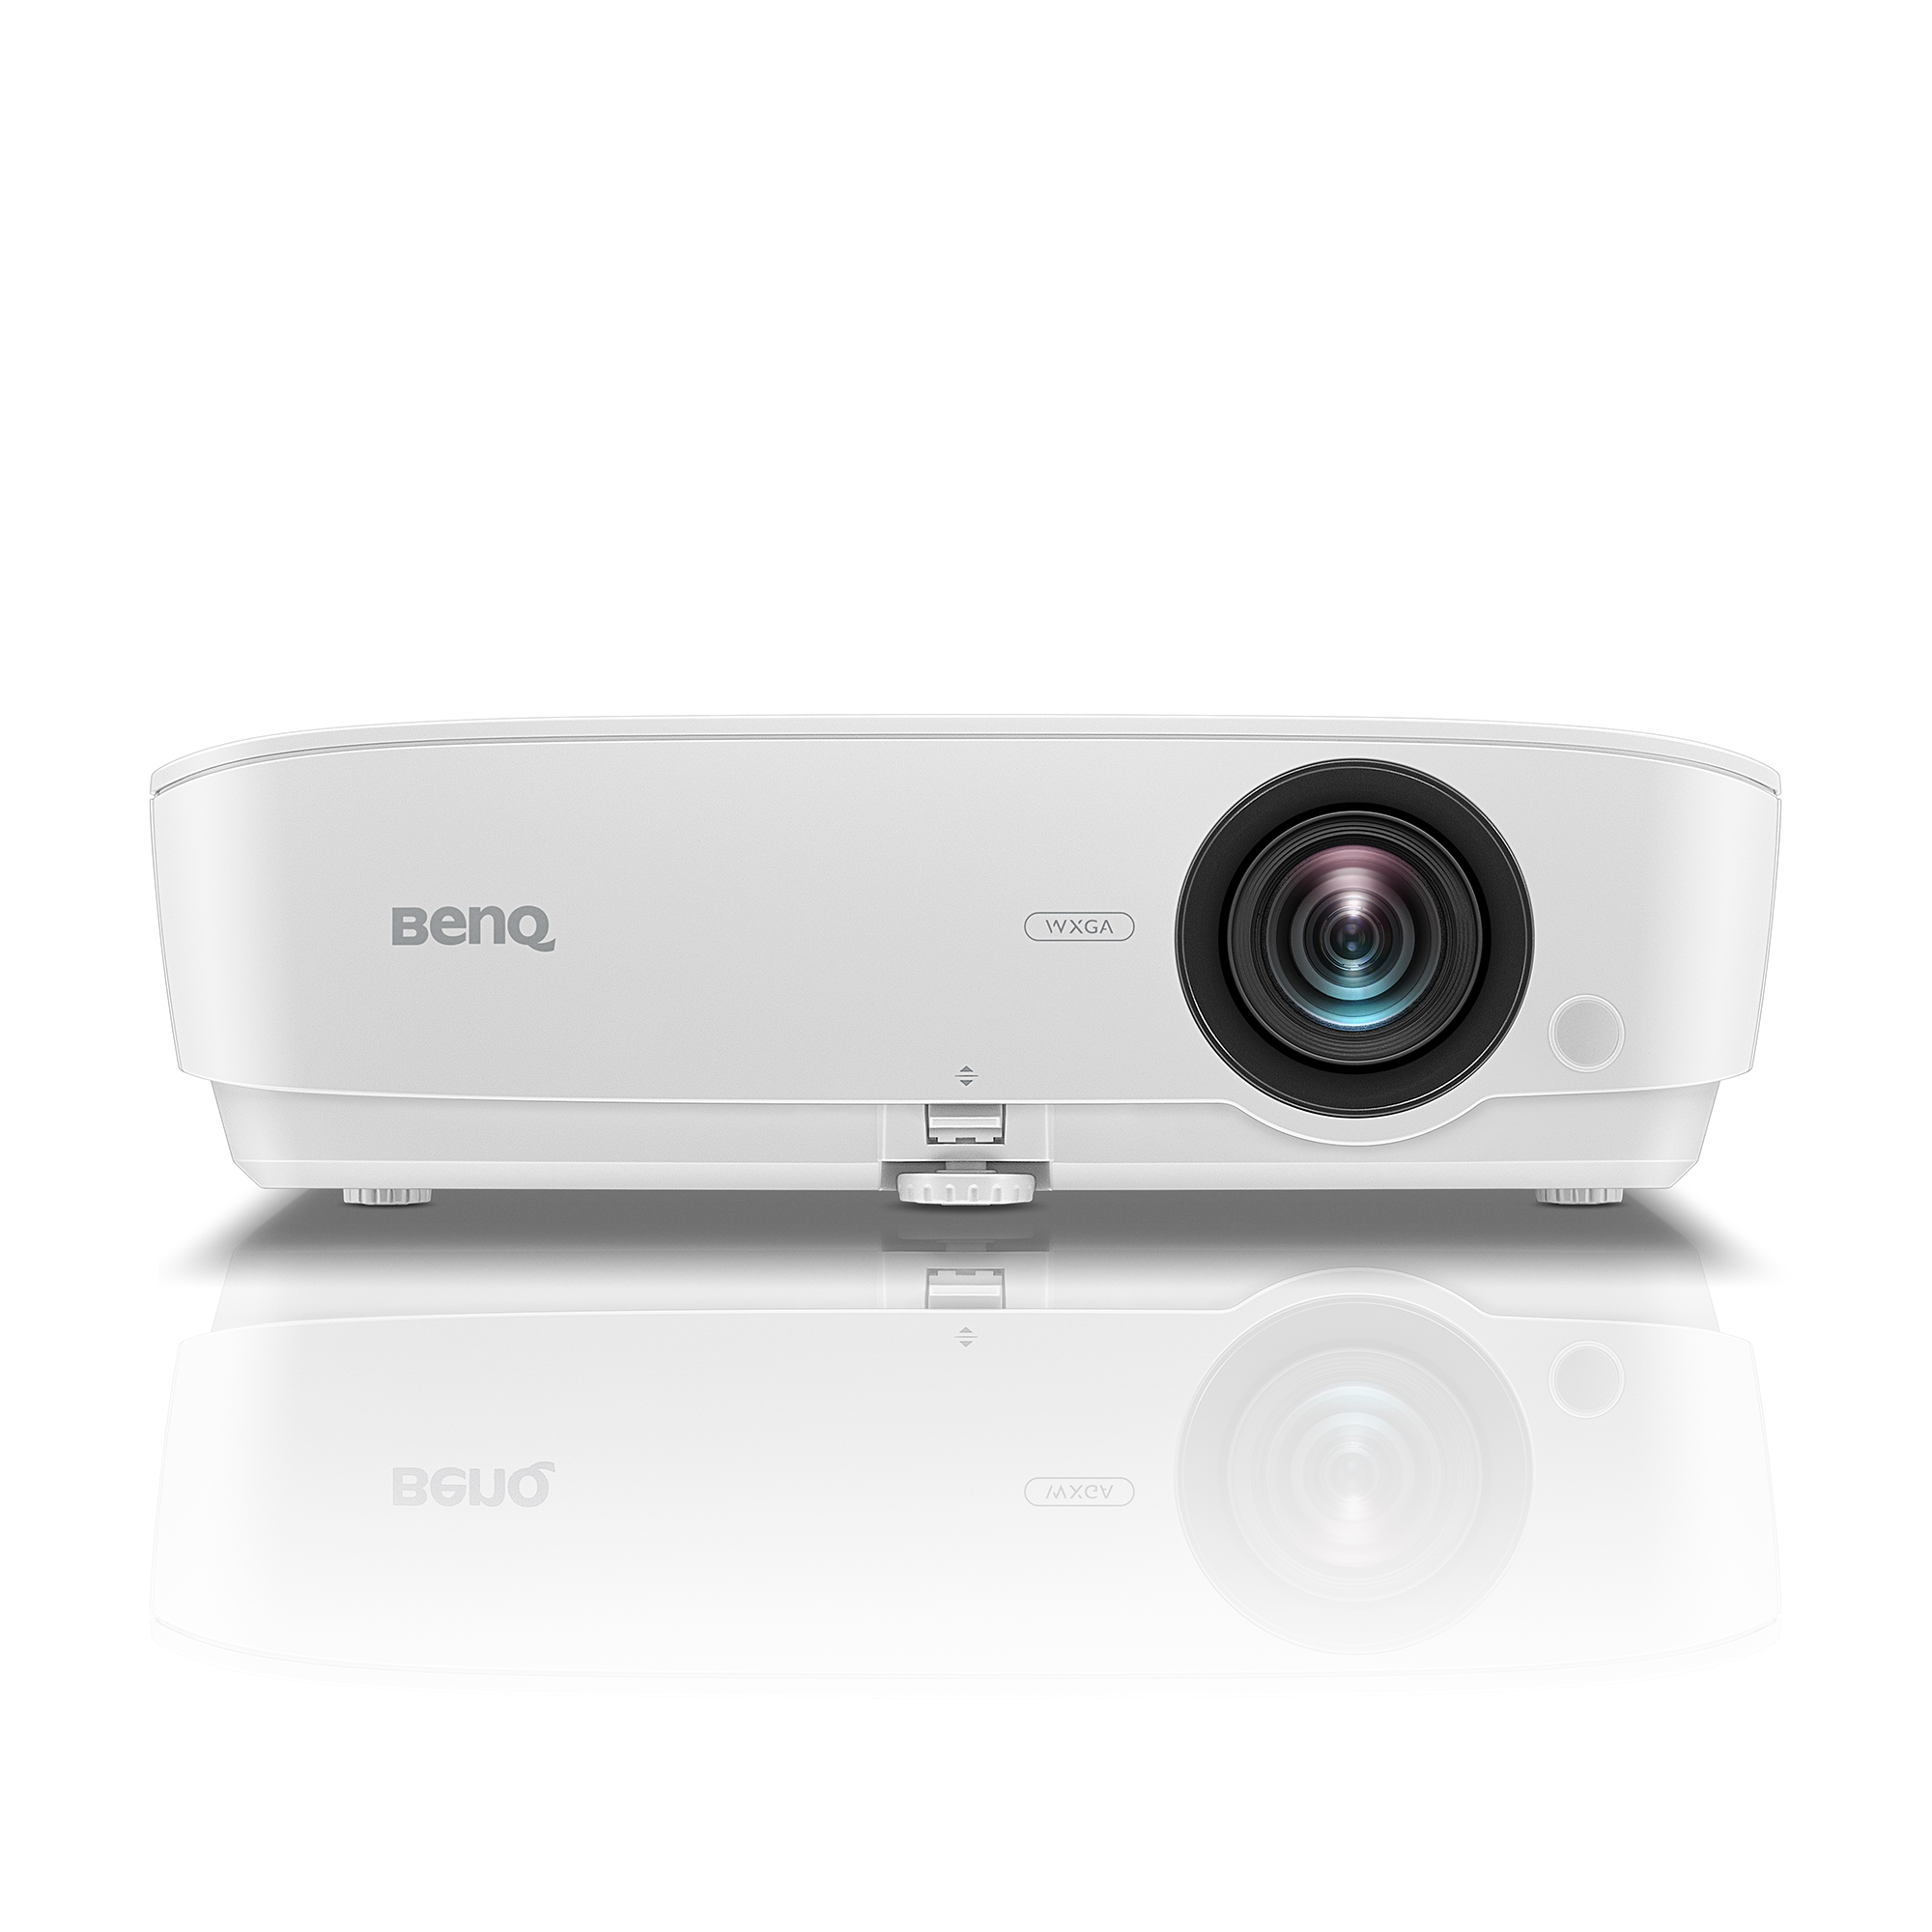 Benq MW535 Projector 1280x800 Eco-Friendly WXGA Dual HDMI White Ref MW535